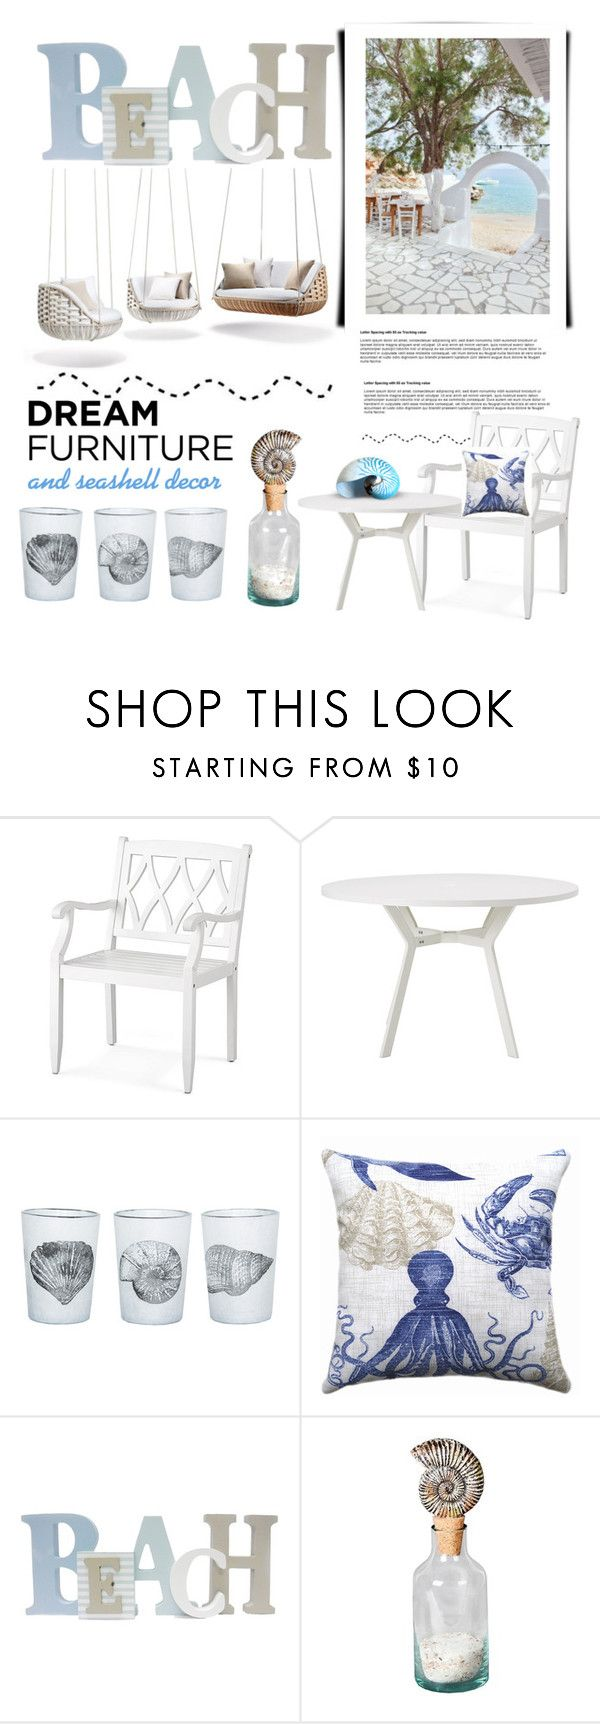 """Dream Furniture and Seashell Decor"" by conch-lady ❤ liked on Polyvore featuring interior, interiors, interior design, home, home decor, interior decorating, Improvements, Ethimo, Dot & Bo and Privilege"